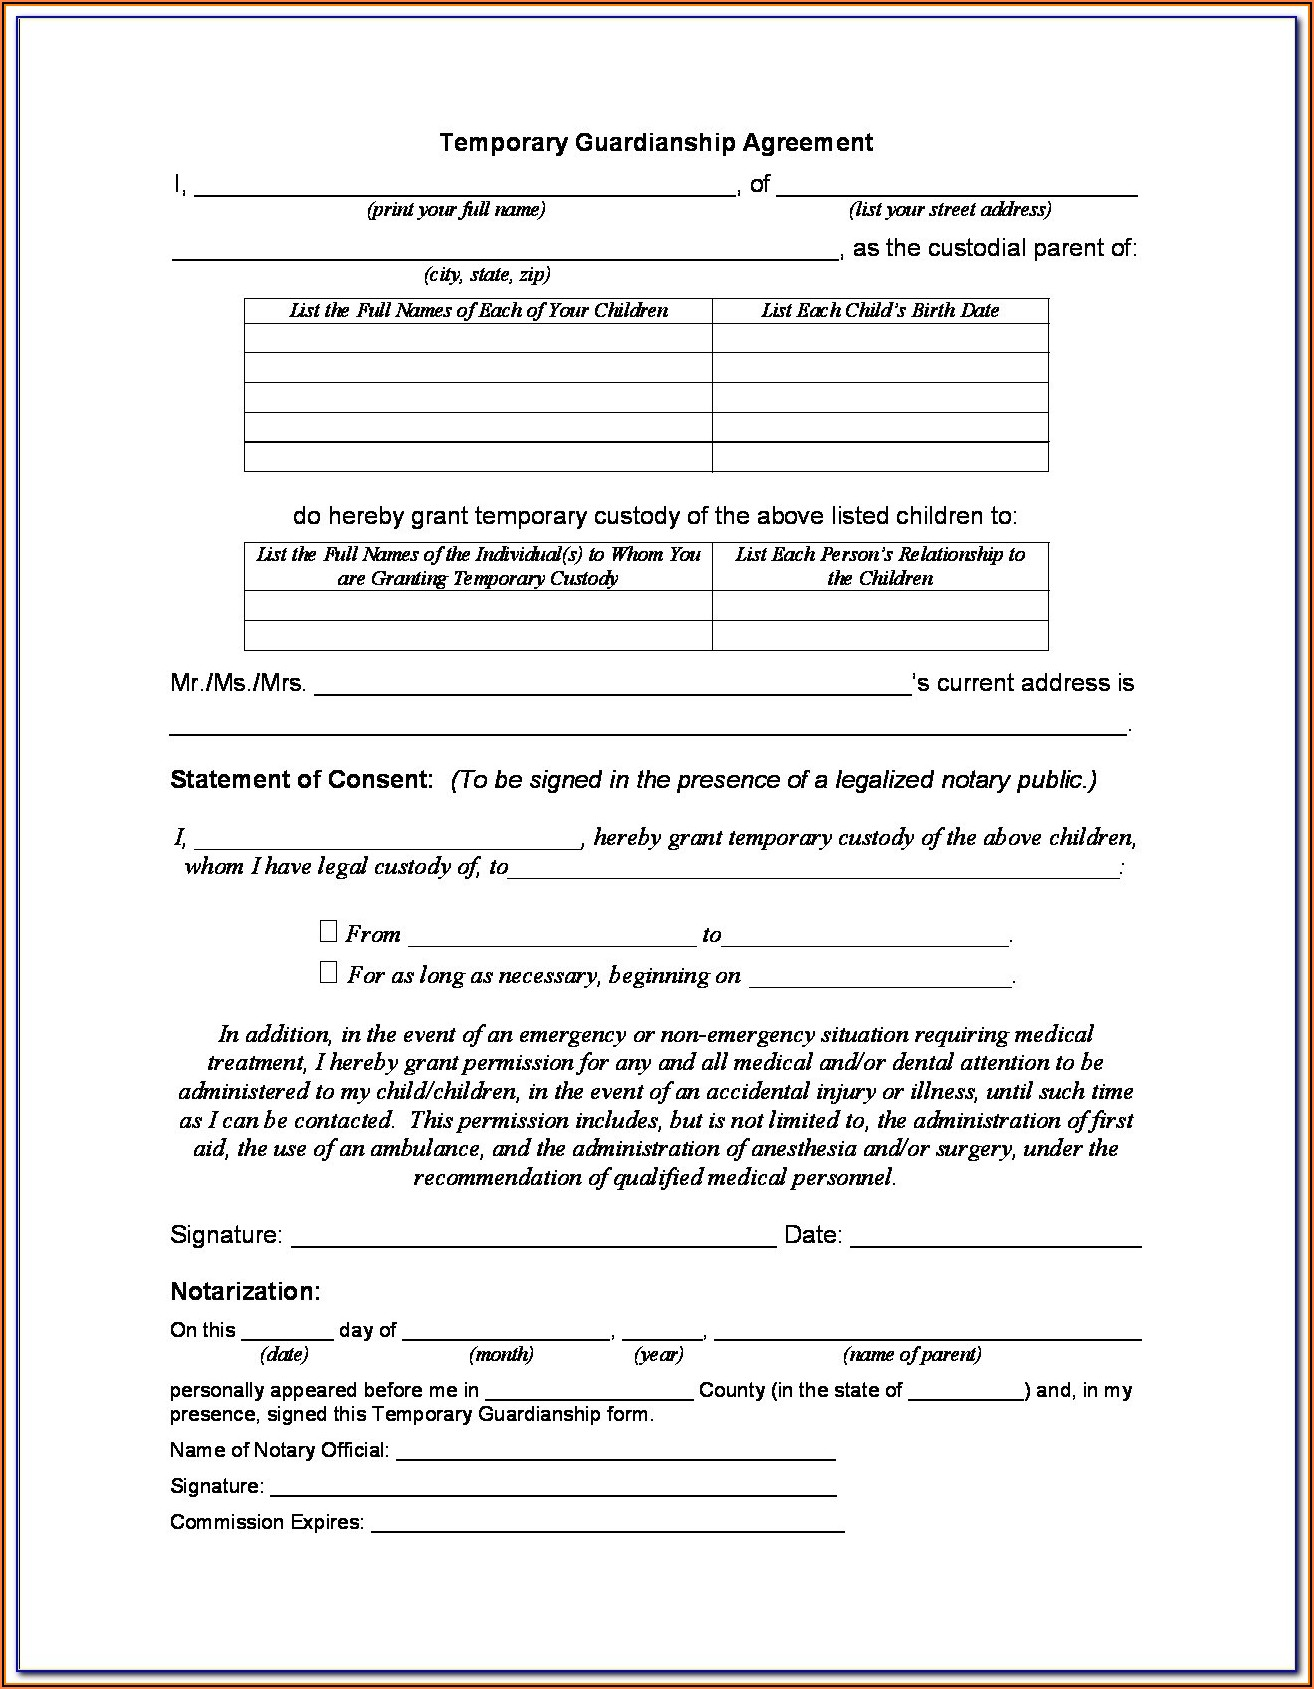 Temporary Guardianship Agreement Form Michigan